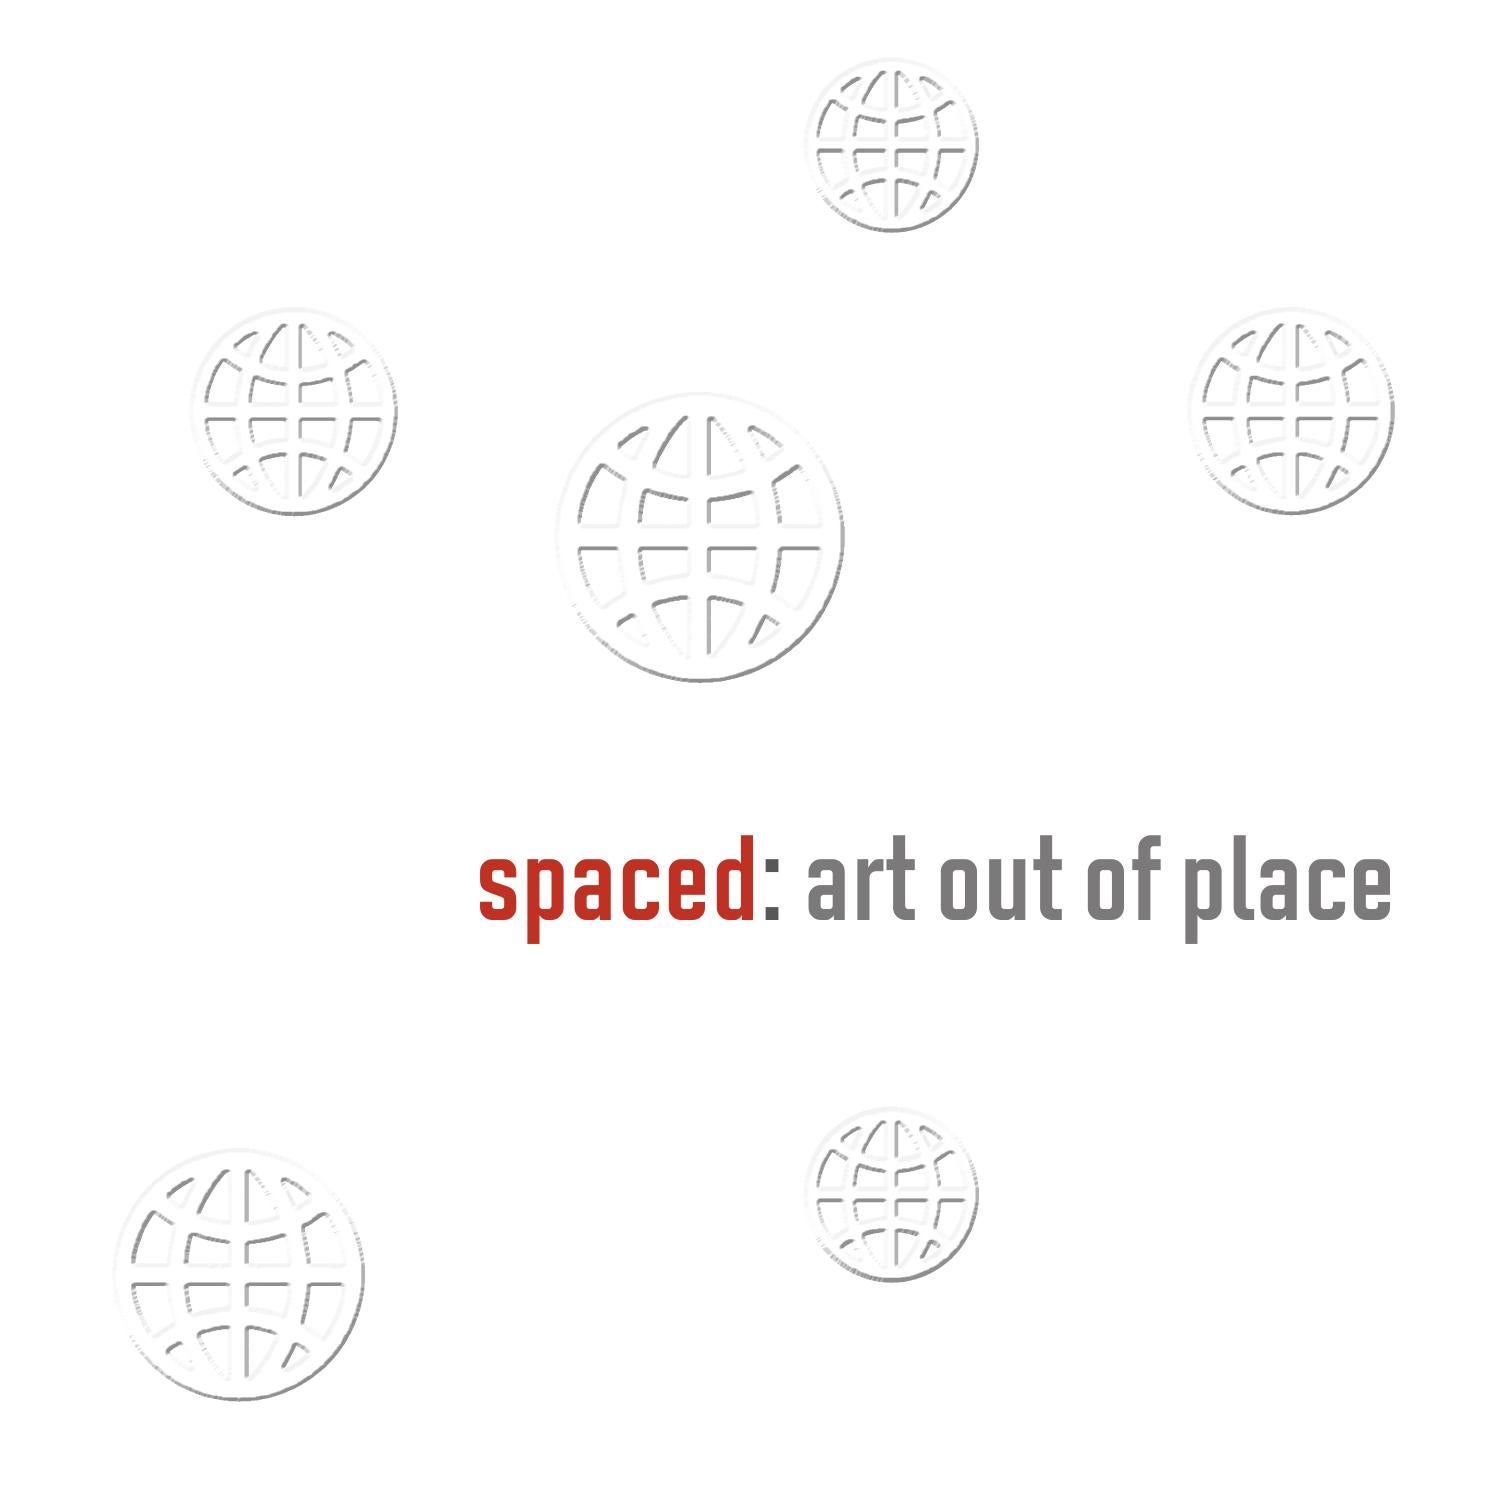 Spaced art out of place by international art space issuu pooptronica Choice Image